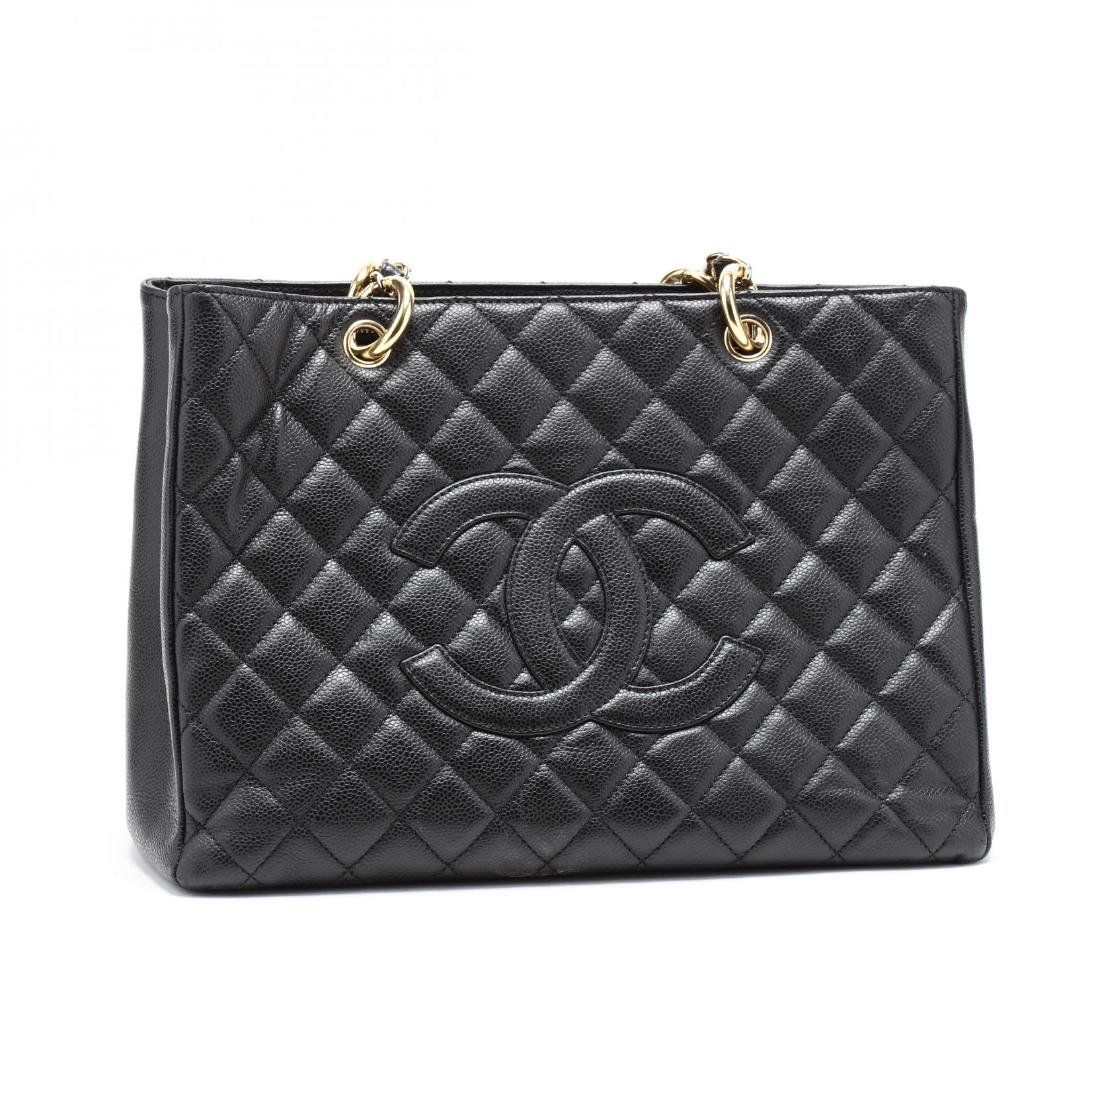 Quilted Black Caviar Leather Grand Shopping Tote - 3